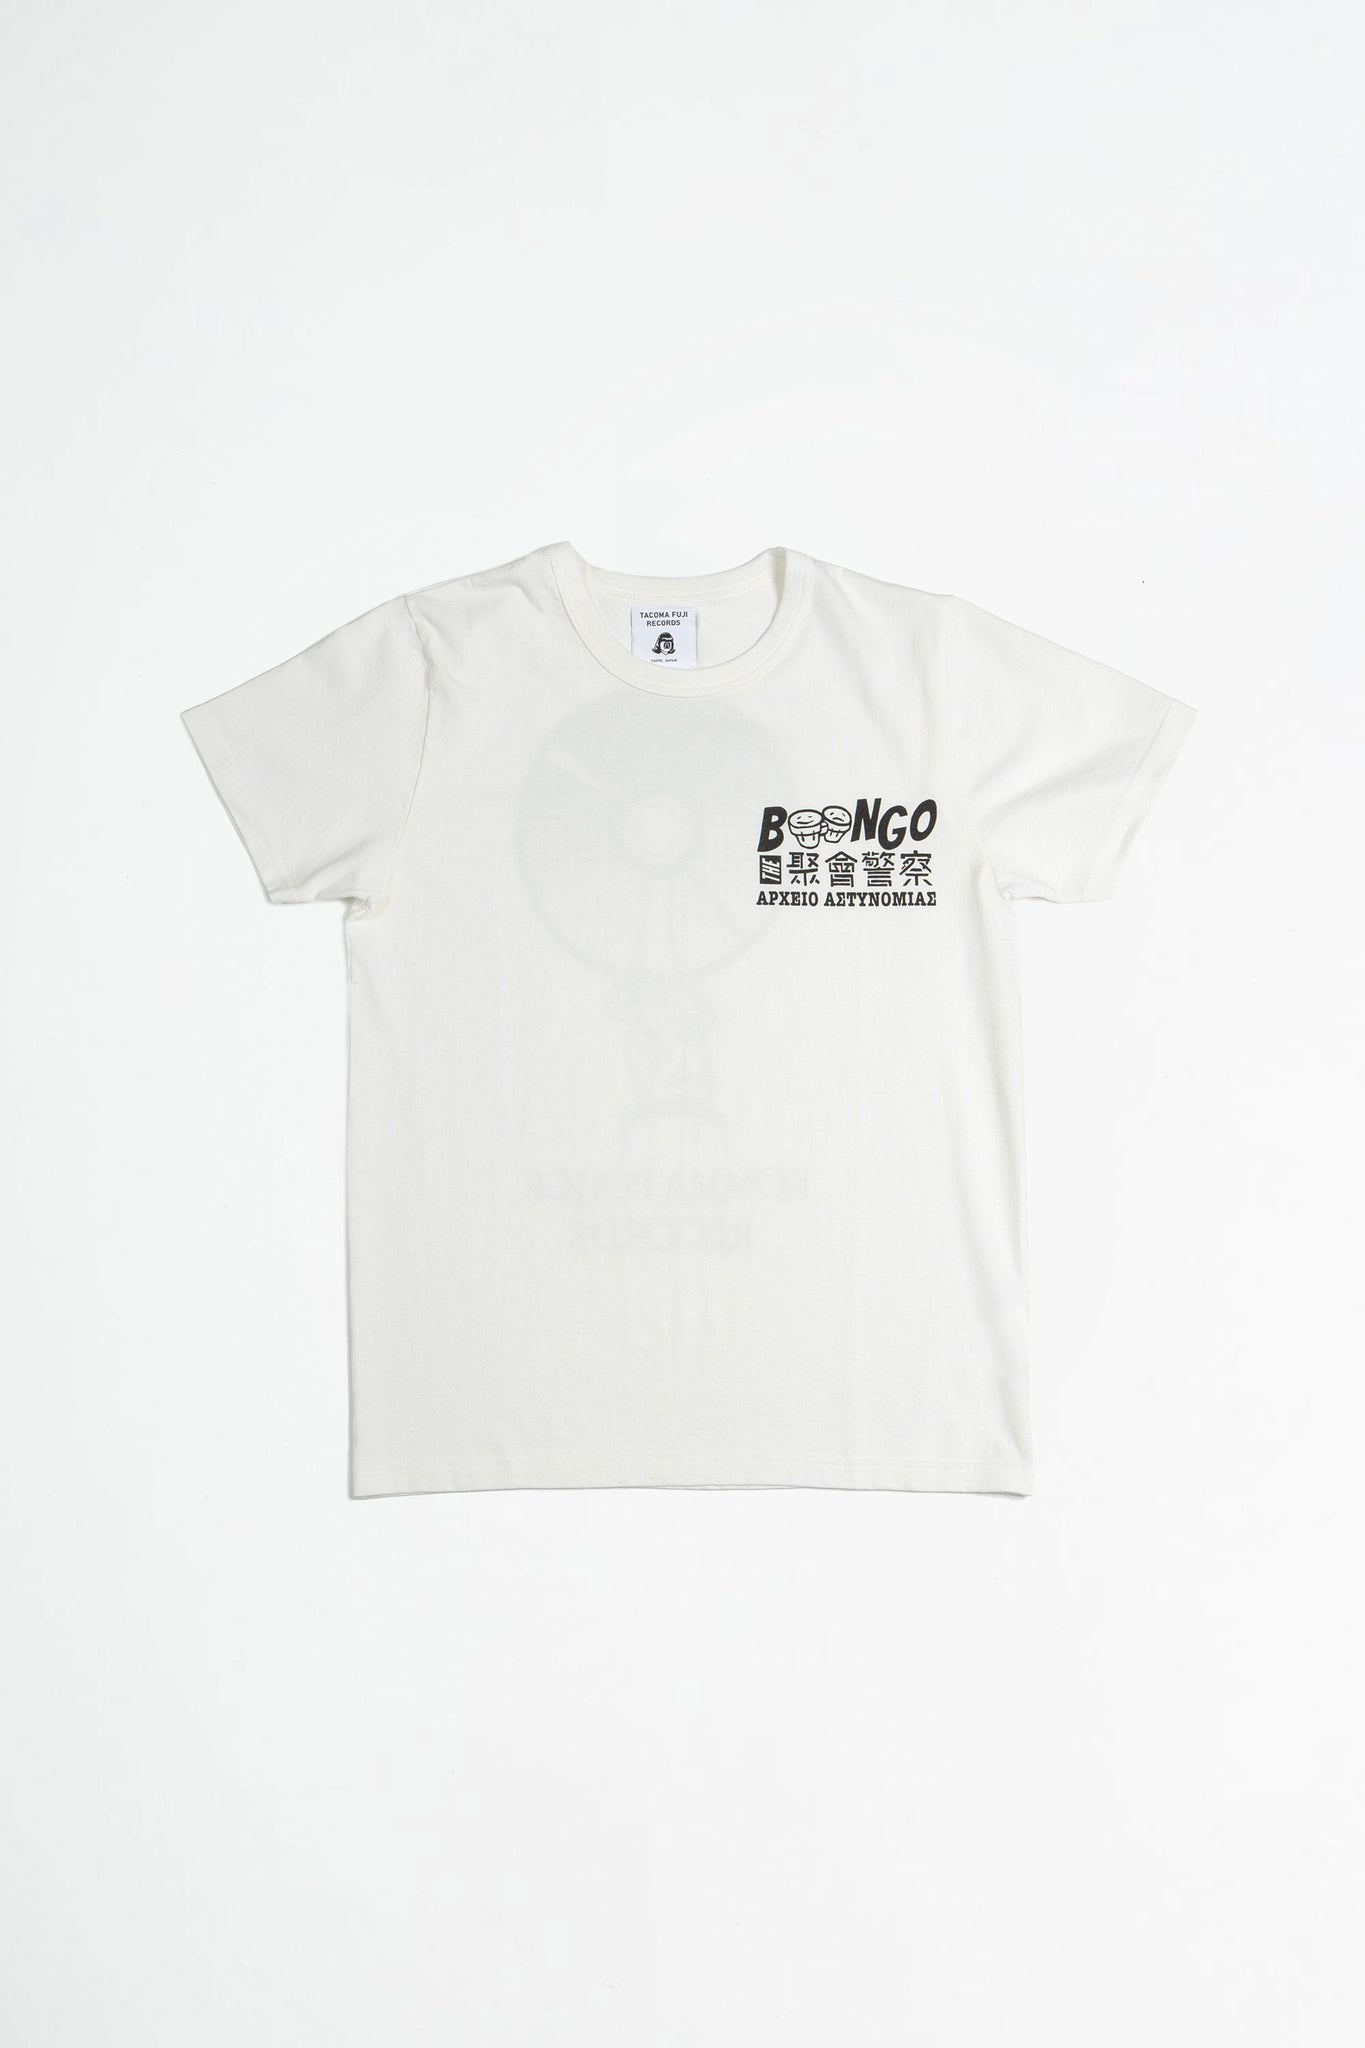 Komma police records t-shirt white